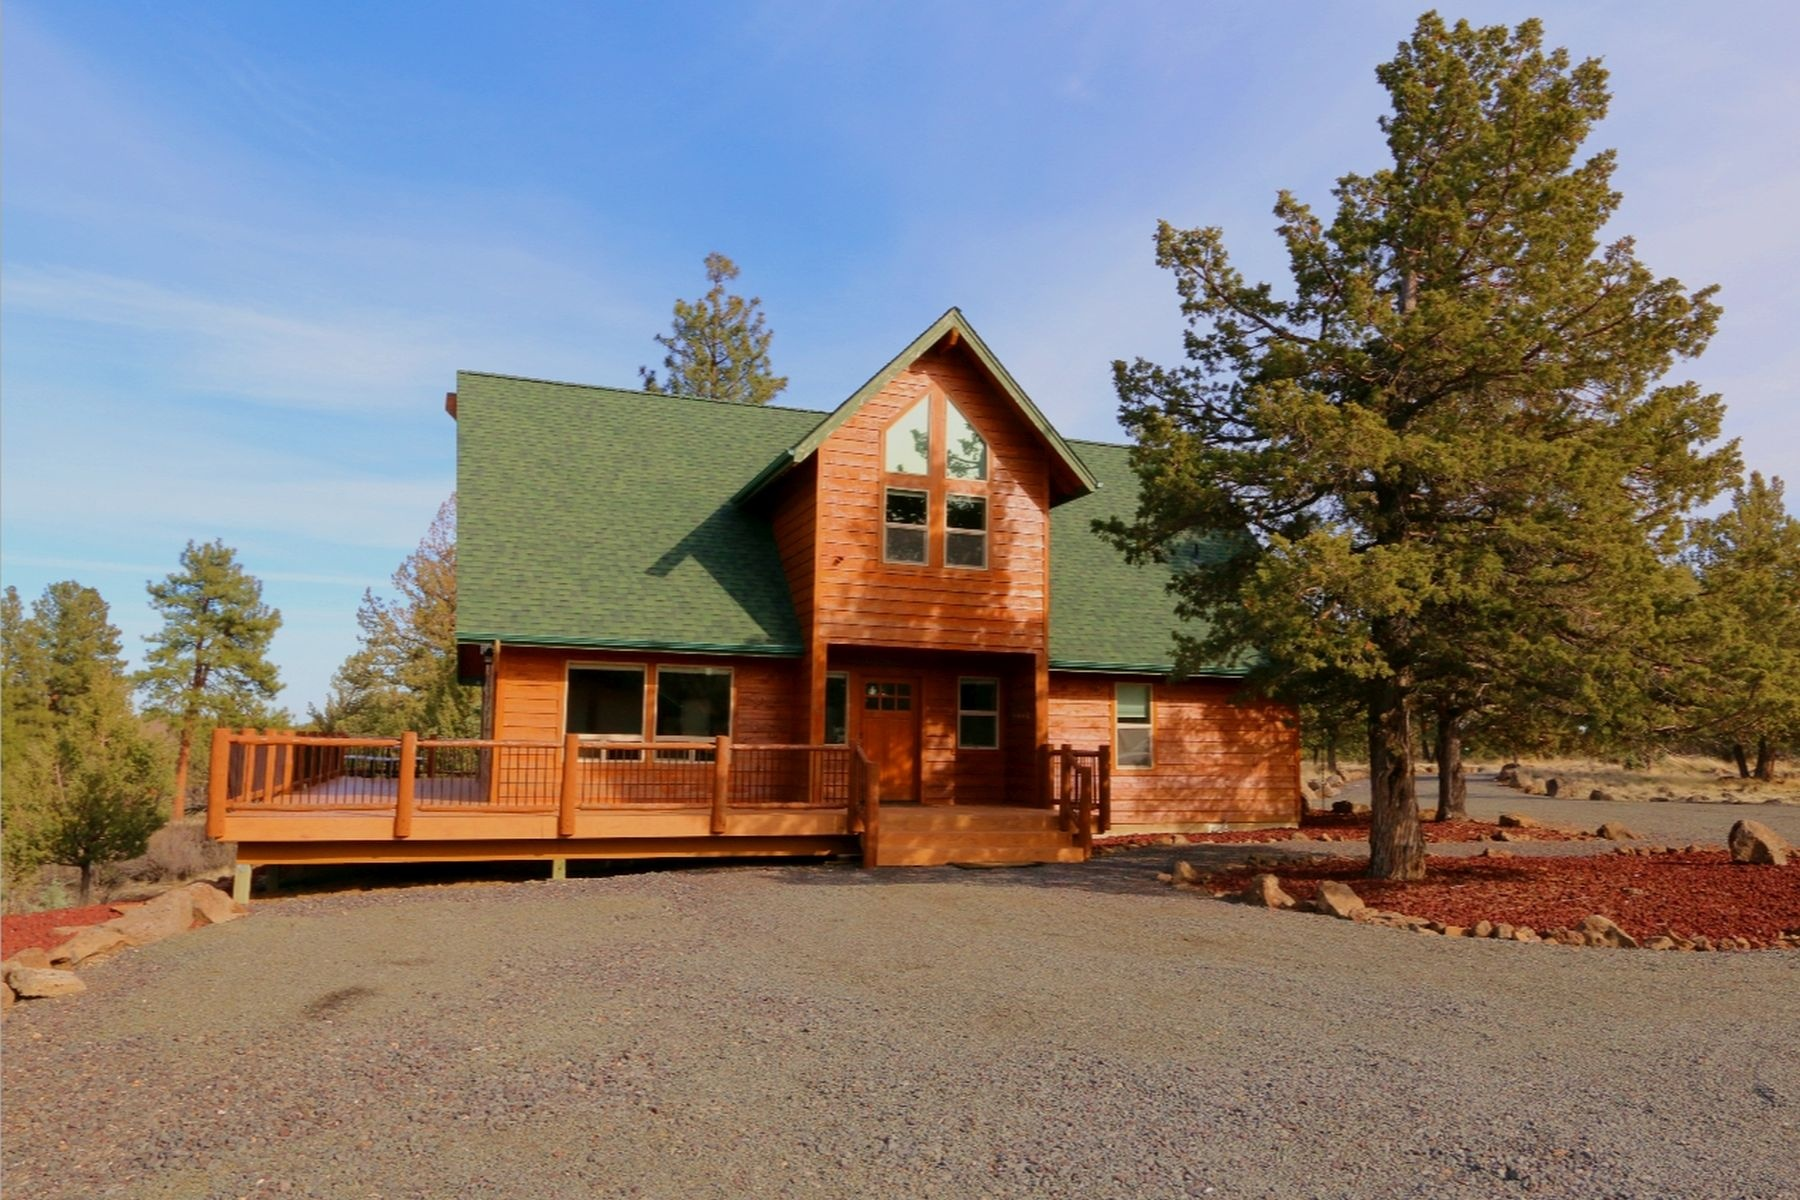 Single Family Home for Sale at Custom Built Home with Views! 5510 SW Wildcat Ln Culver, Oregon, 97734 United States